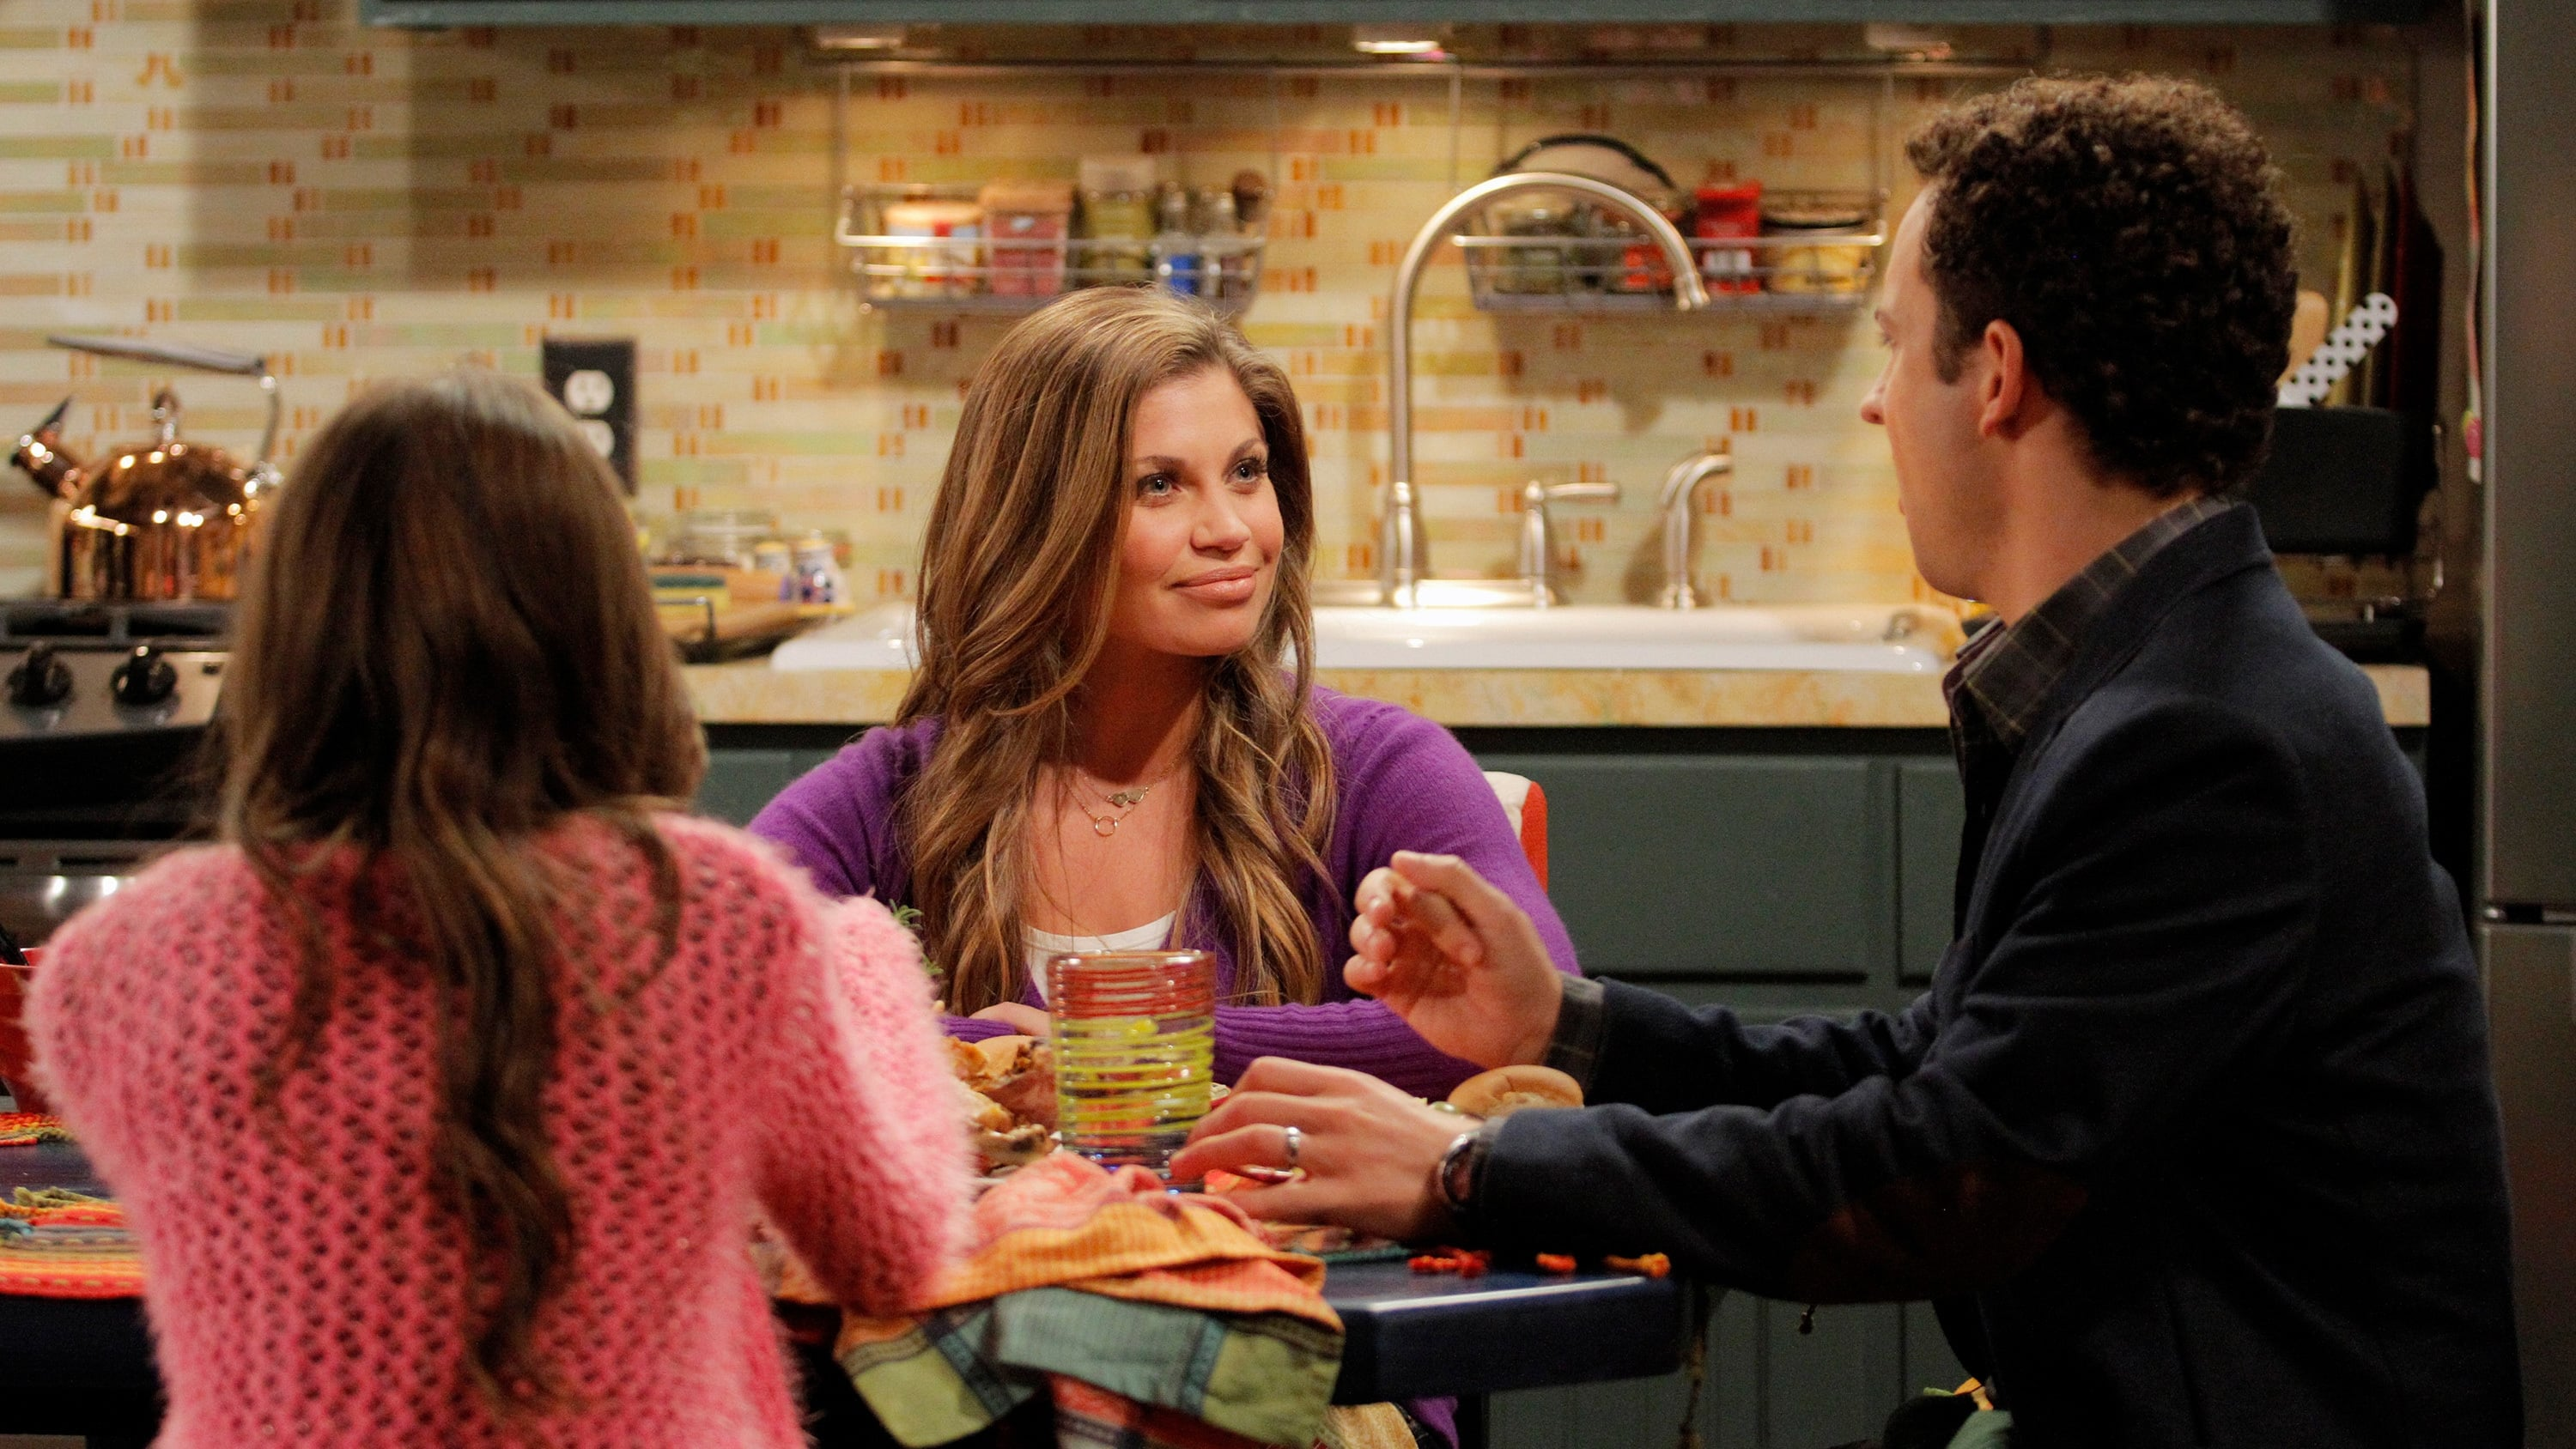 girl meets world air date and channel Girl meets world ends its third and final season tonight recently, the cast and creator spoke with tvline about the end of the disney channel tv show earlier this month, the network cancelled the boy meets world spinoff after three seasons.